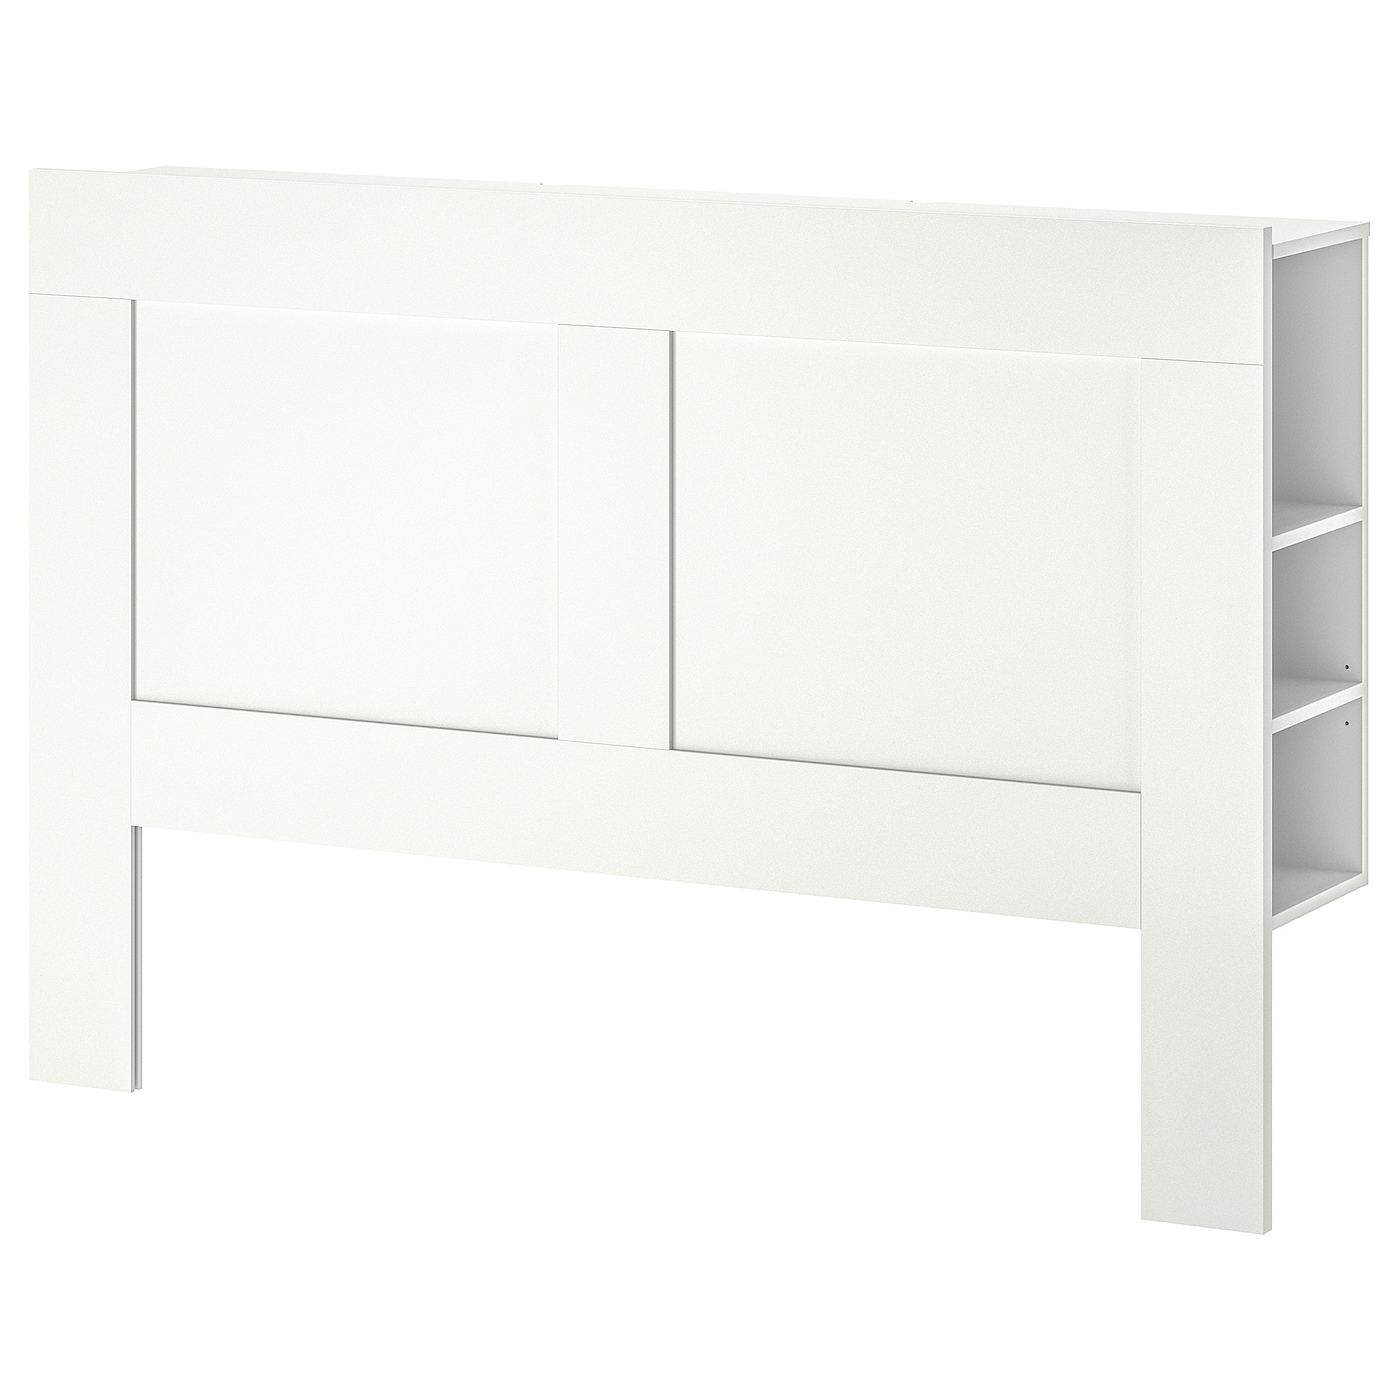 brimnes t te de lit avec rangement blanc 180 cm ikea. Black Bedroom Furniture Sets. Home Design Ideas